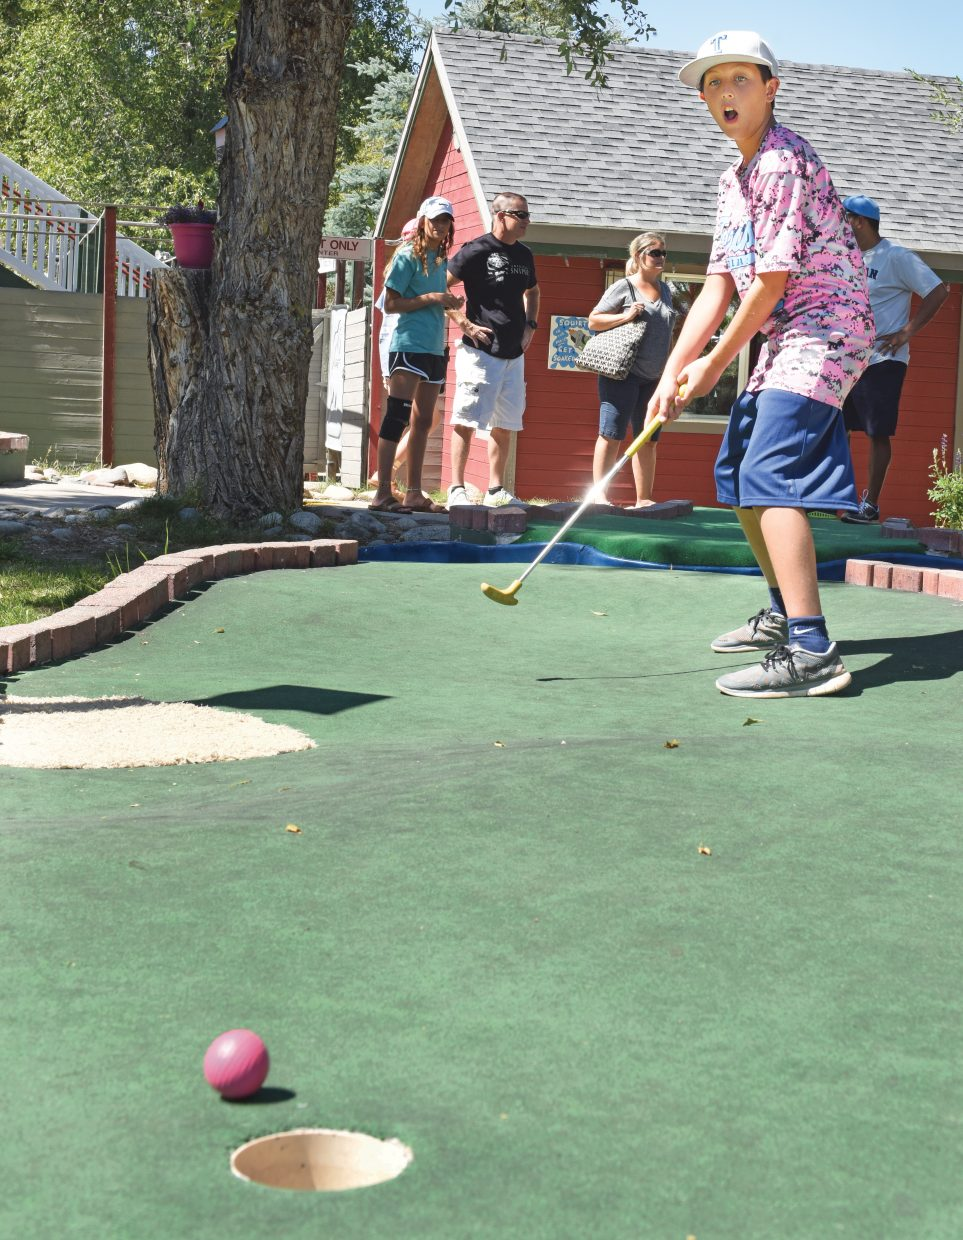 Collin Renteria plays miniature golf at Amaze'n Steamboat Family Fun Park in Steamboat Springs. Renteria was in town for the Triple Crown Baseball tournament, and was visiting the fun park with teammates and family.